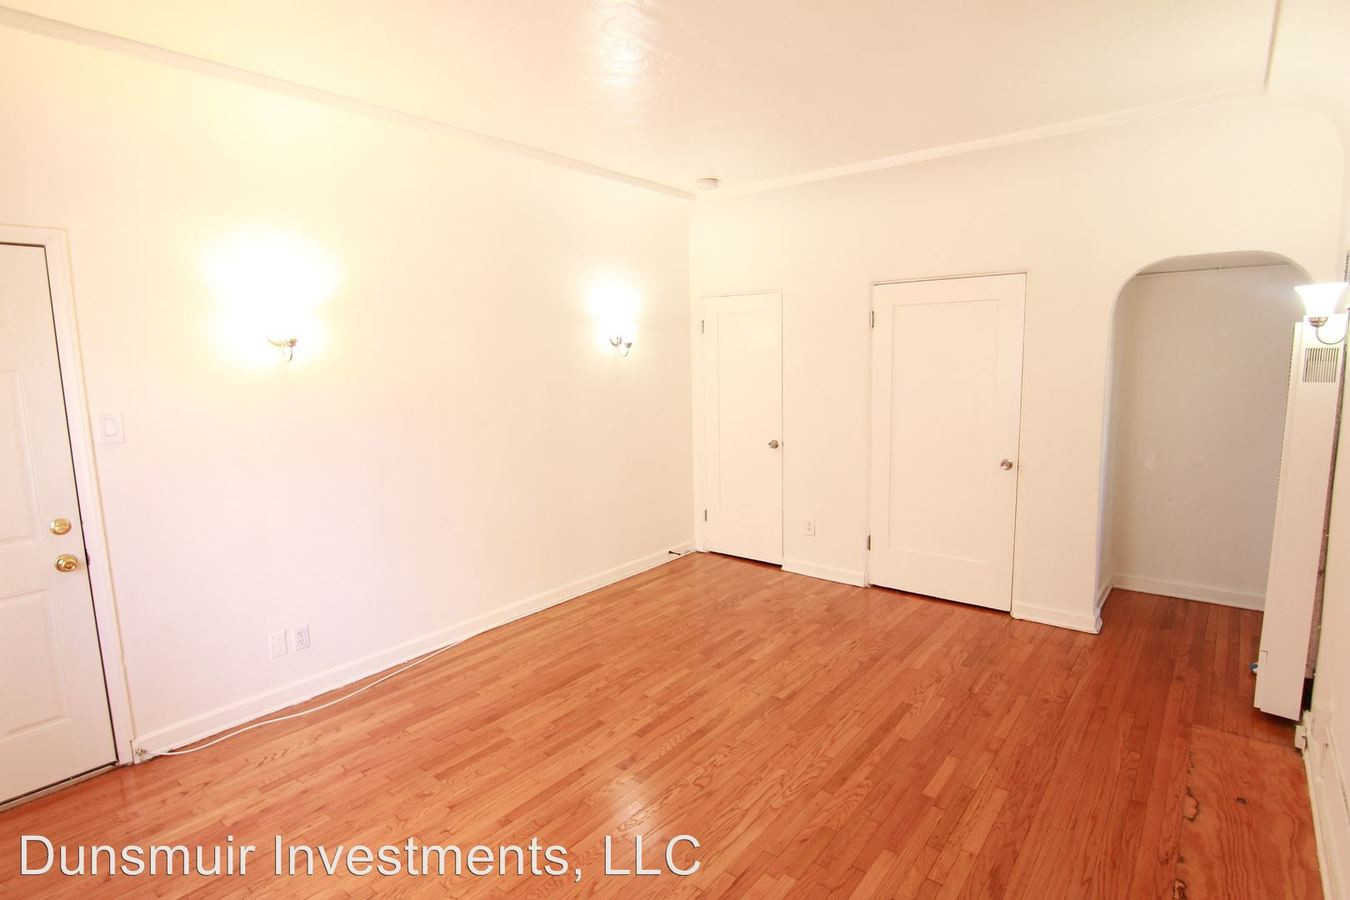 Discount Hardwood Floors and Molding Los Angeles Of 654 S Dunsmuir Ave Los Angeles Ca Apartment for Rent Regarding Large